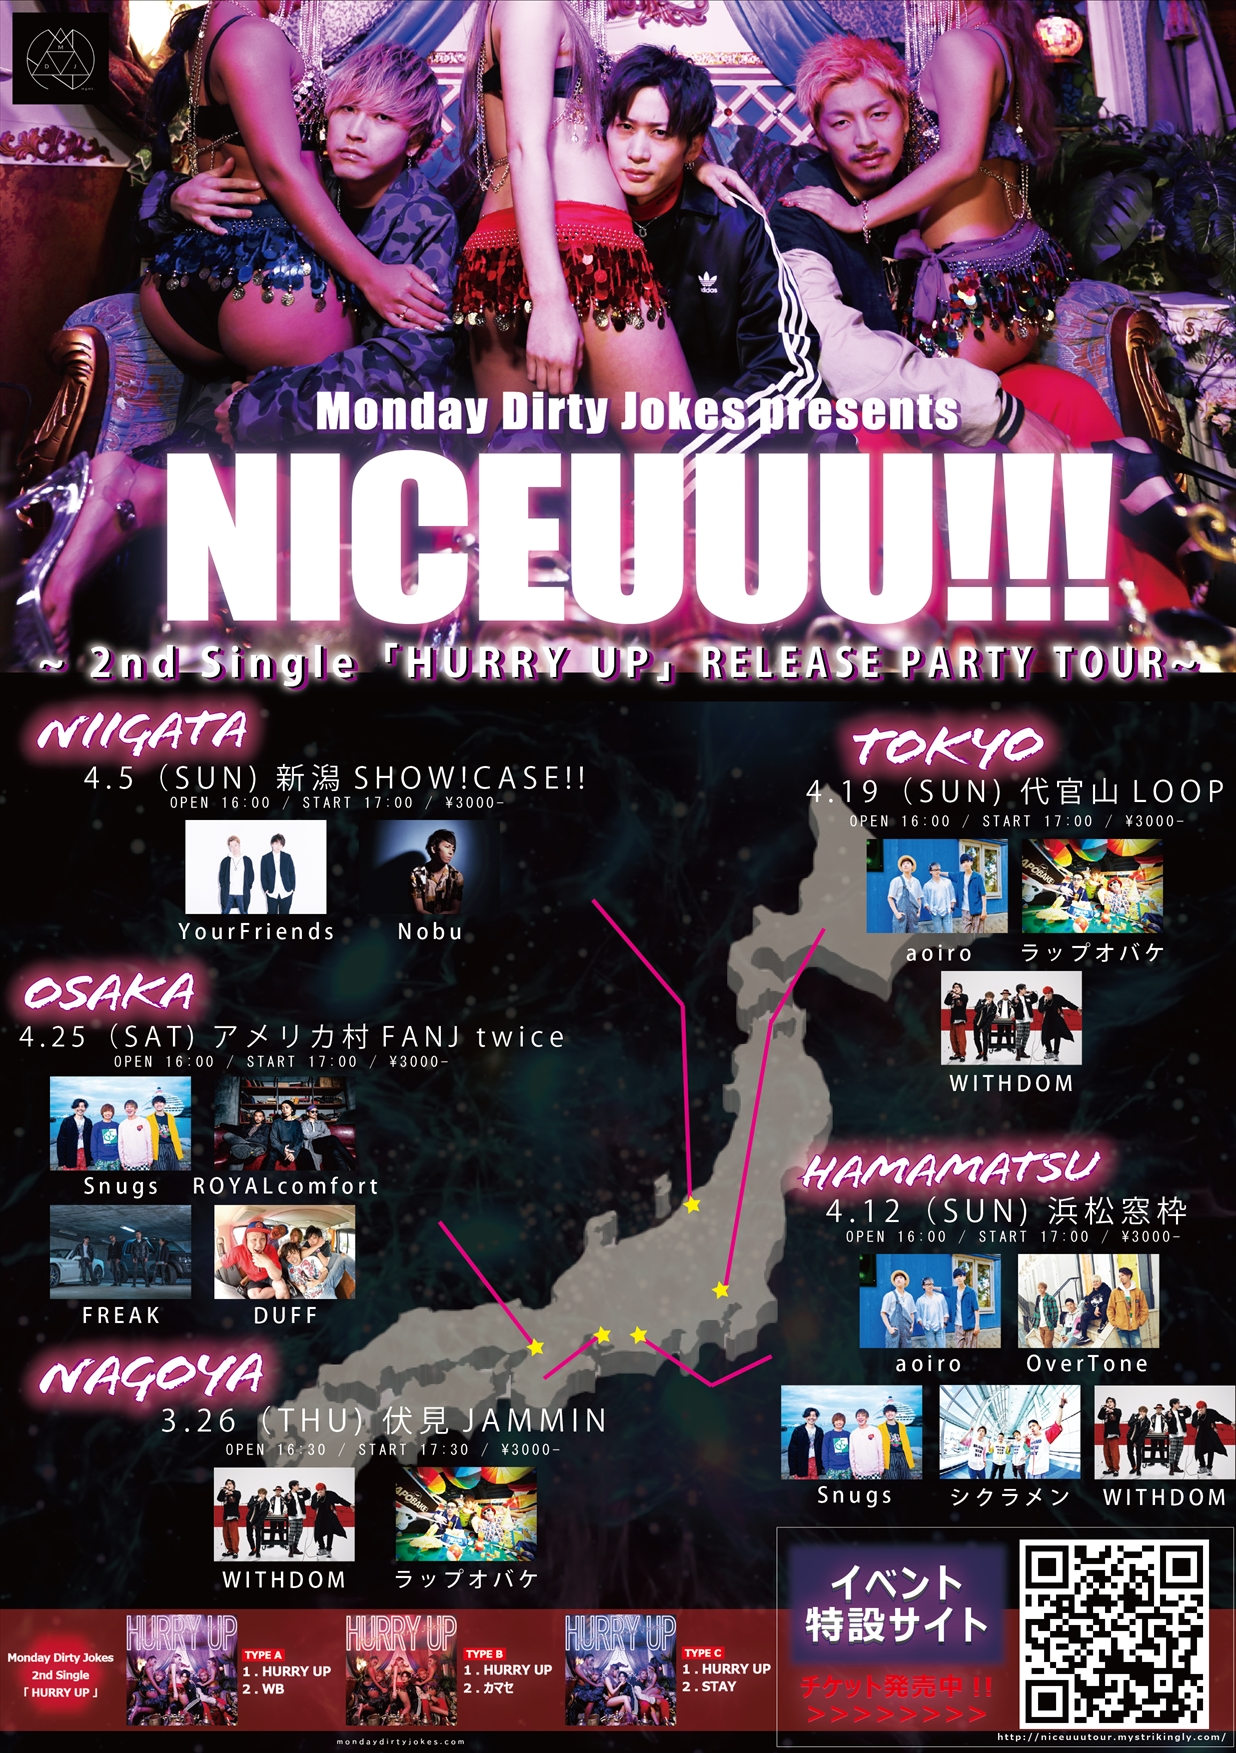 Monday Dirty Jokes 「NICEUUU!!!~HURRY UP RELEASE TOURS~」 @新潟SHOW!CASE!!